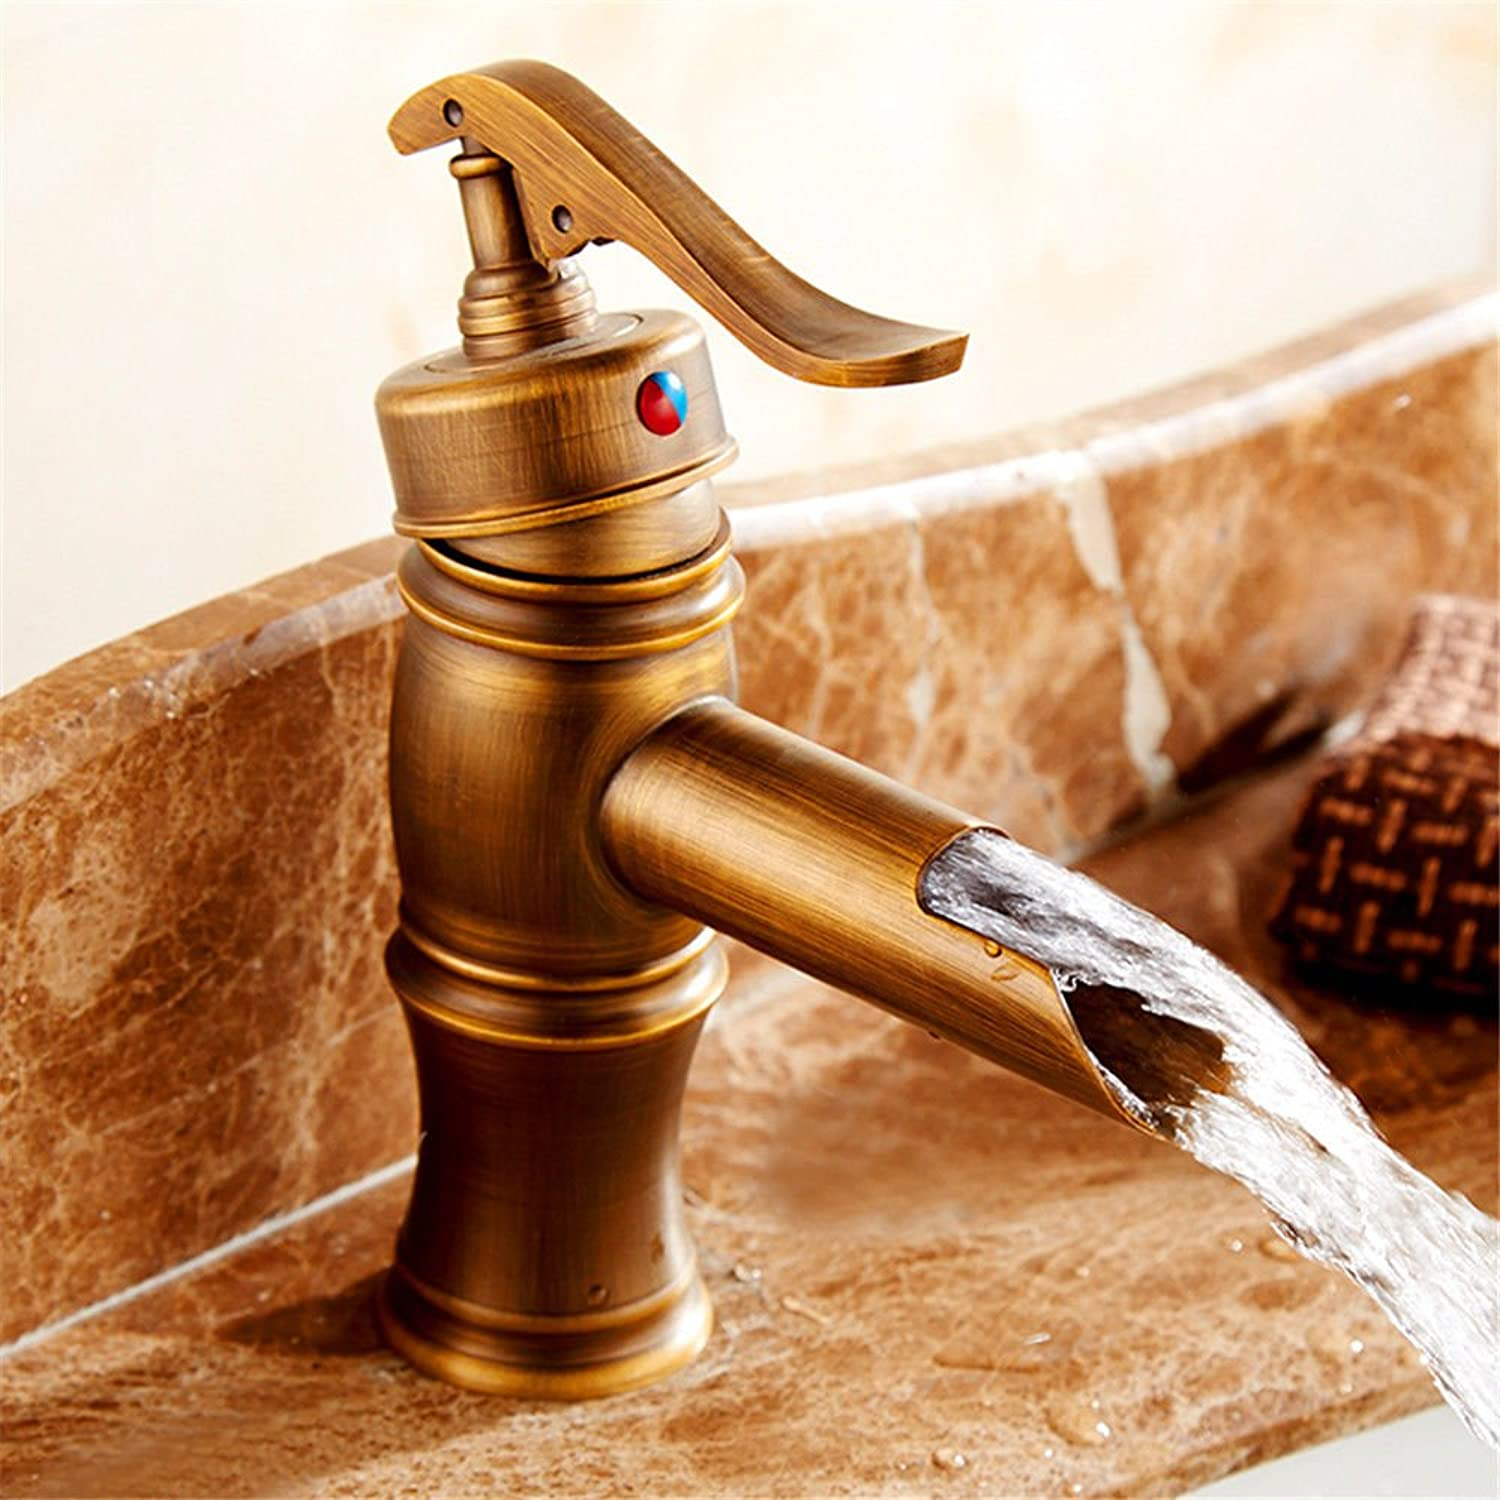 Good quality Antique Basin Sink Mixer Tap The Antique brass faucet antique basin mixer